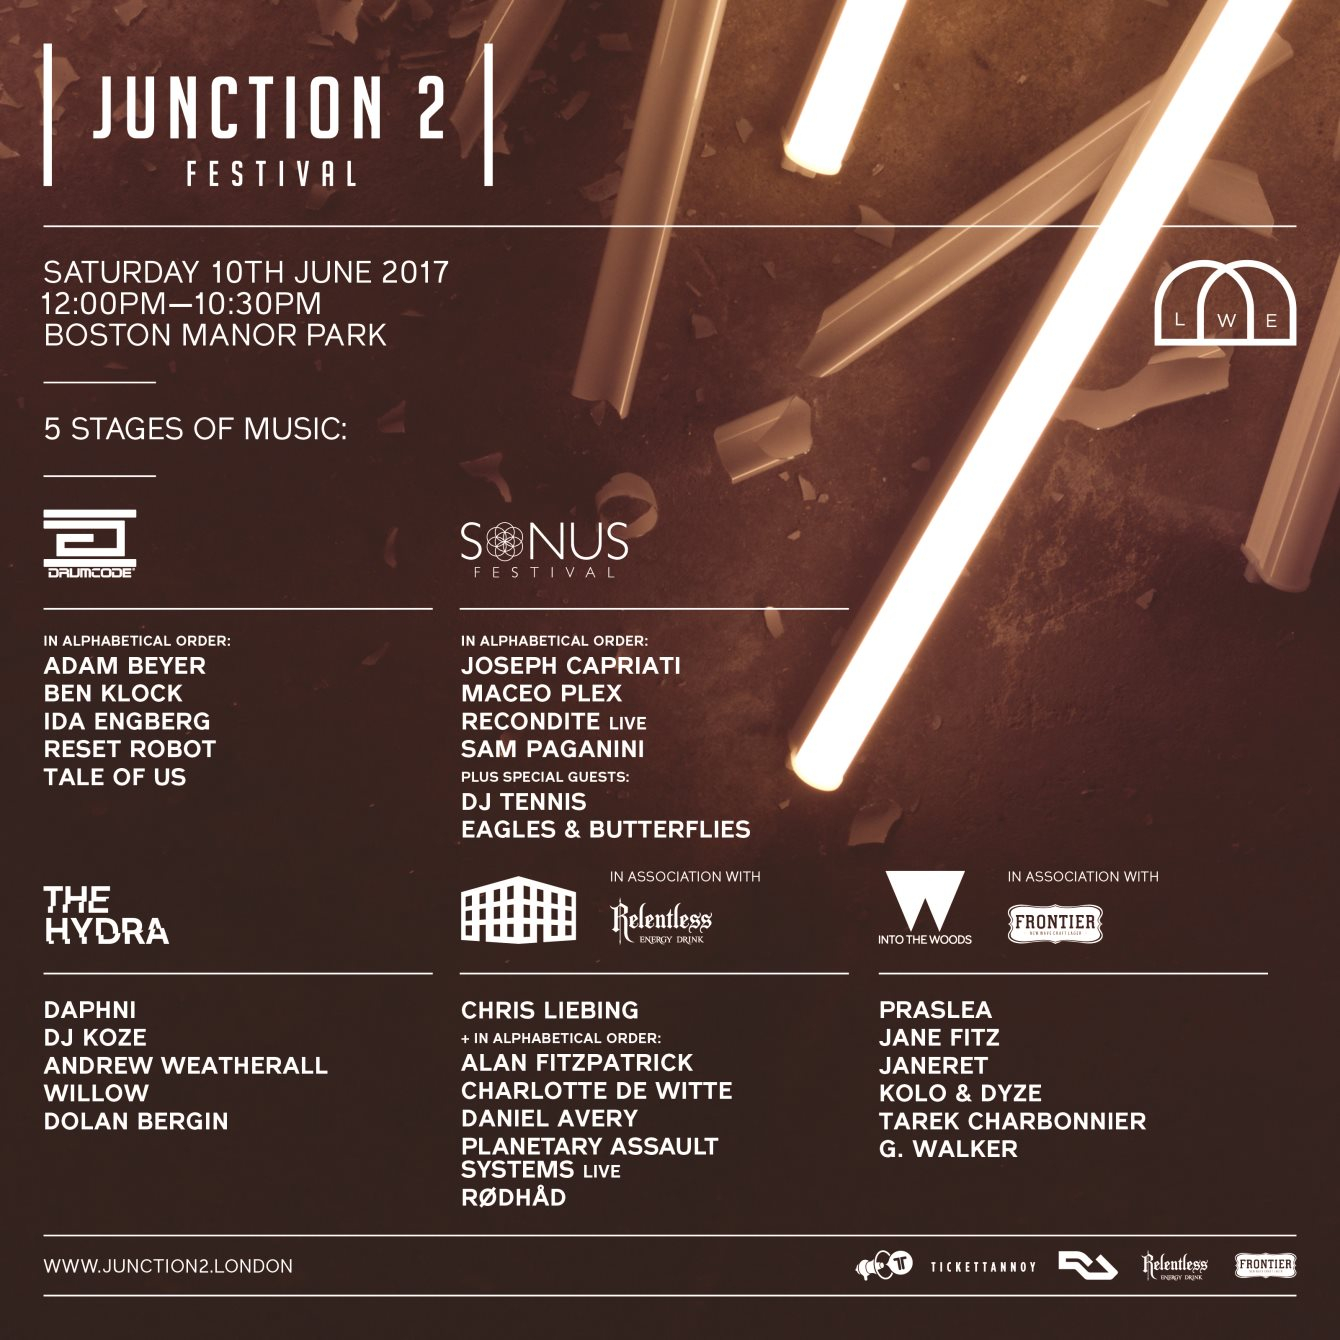 About To Blow Previews: The 5 Unmissable Artists at Junction